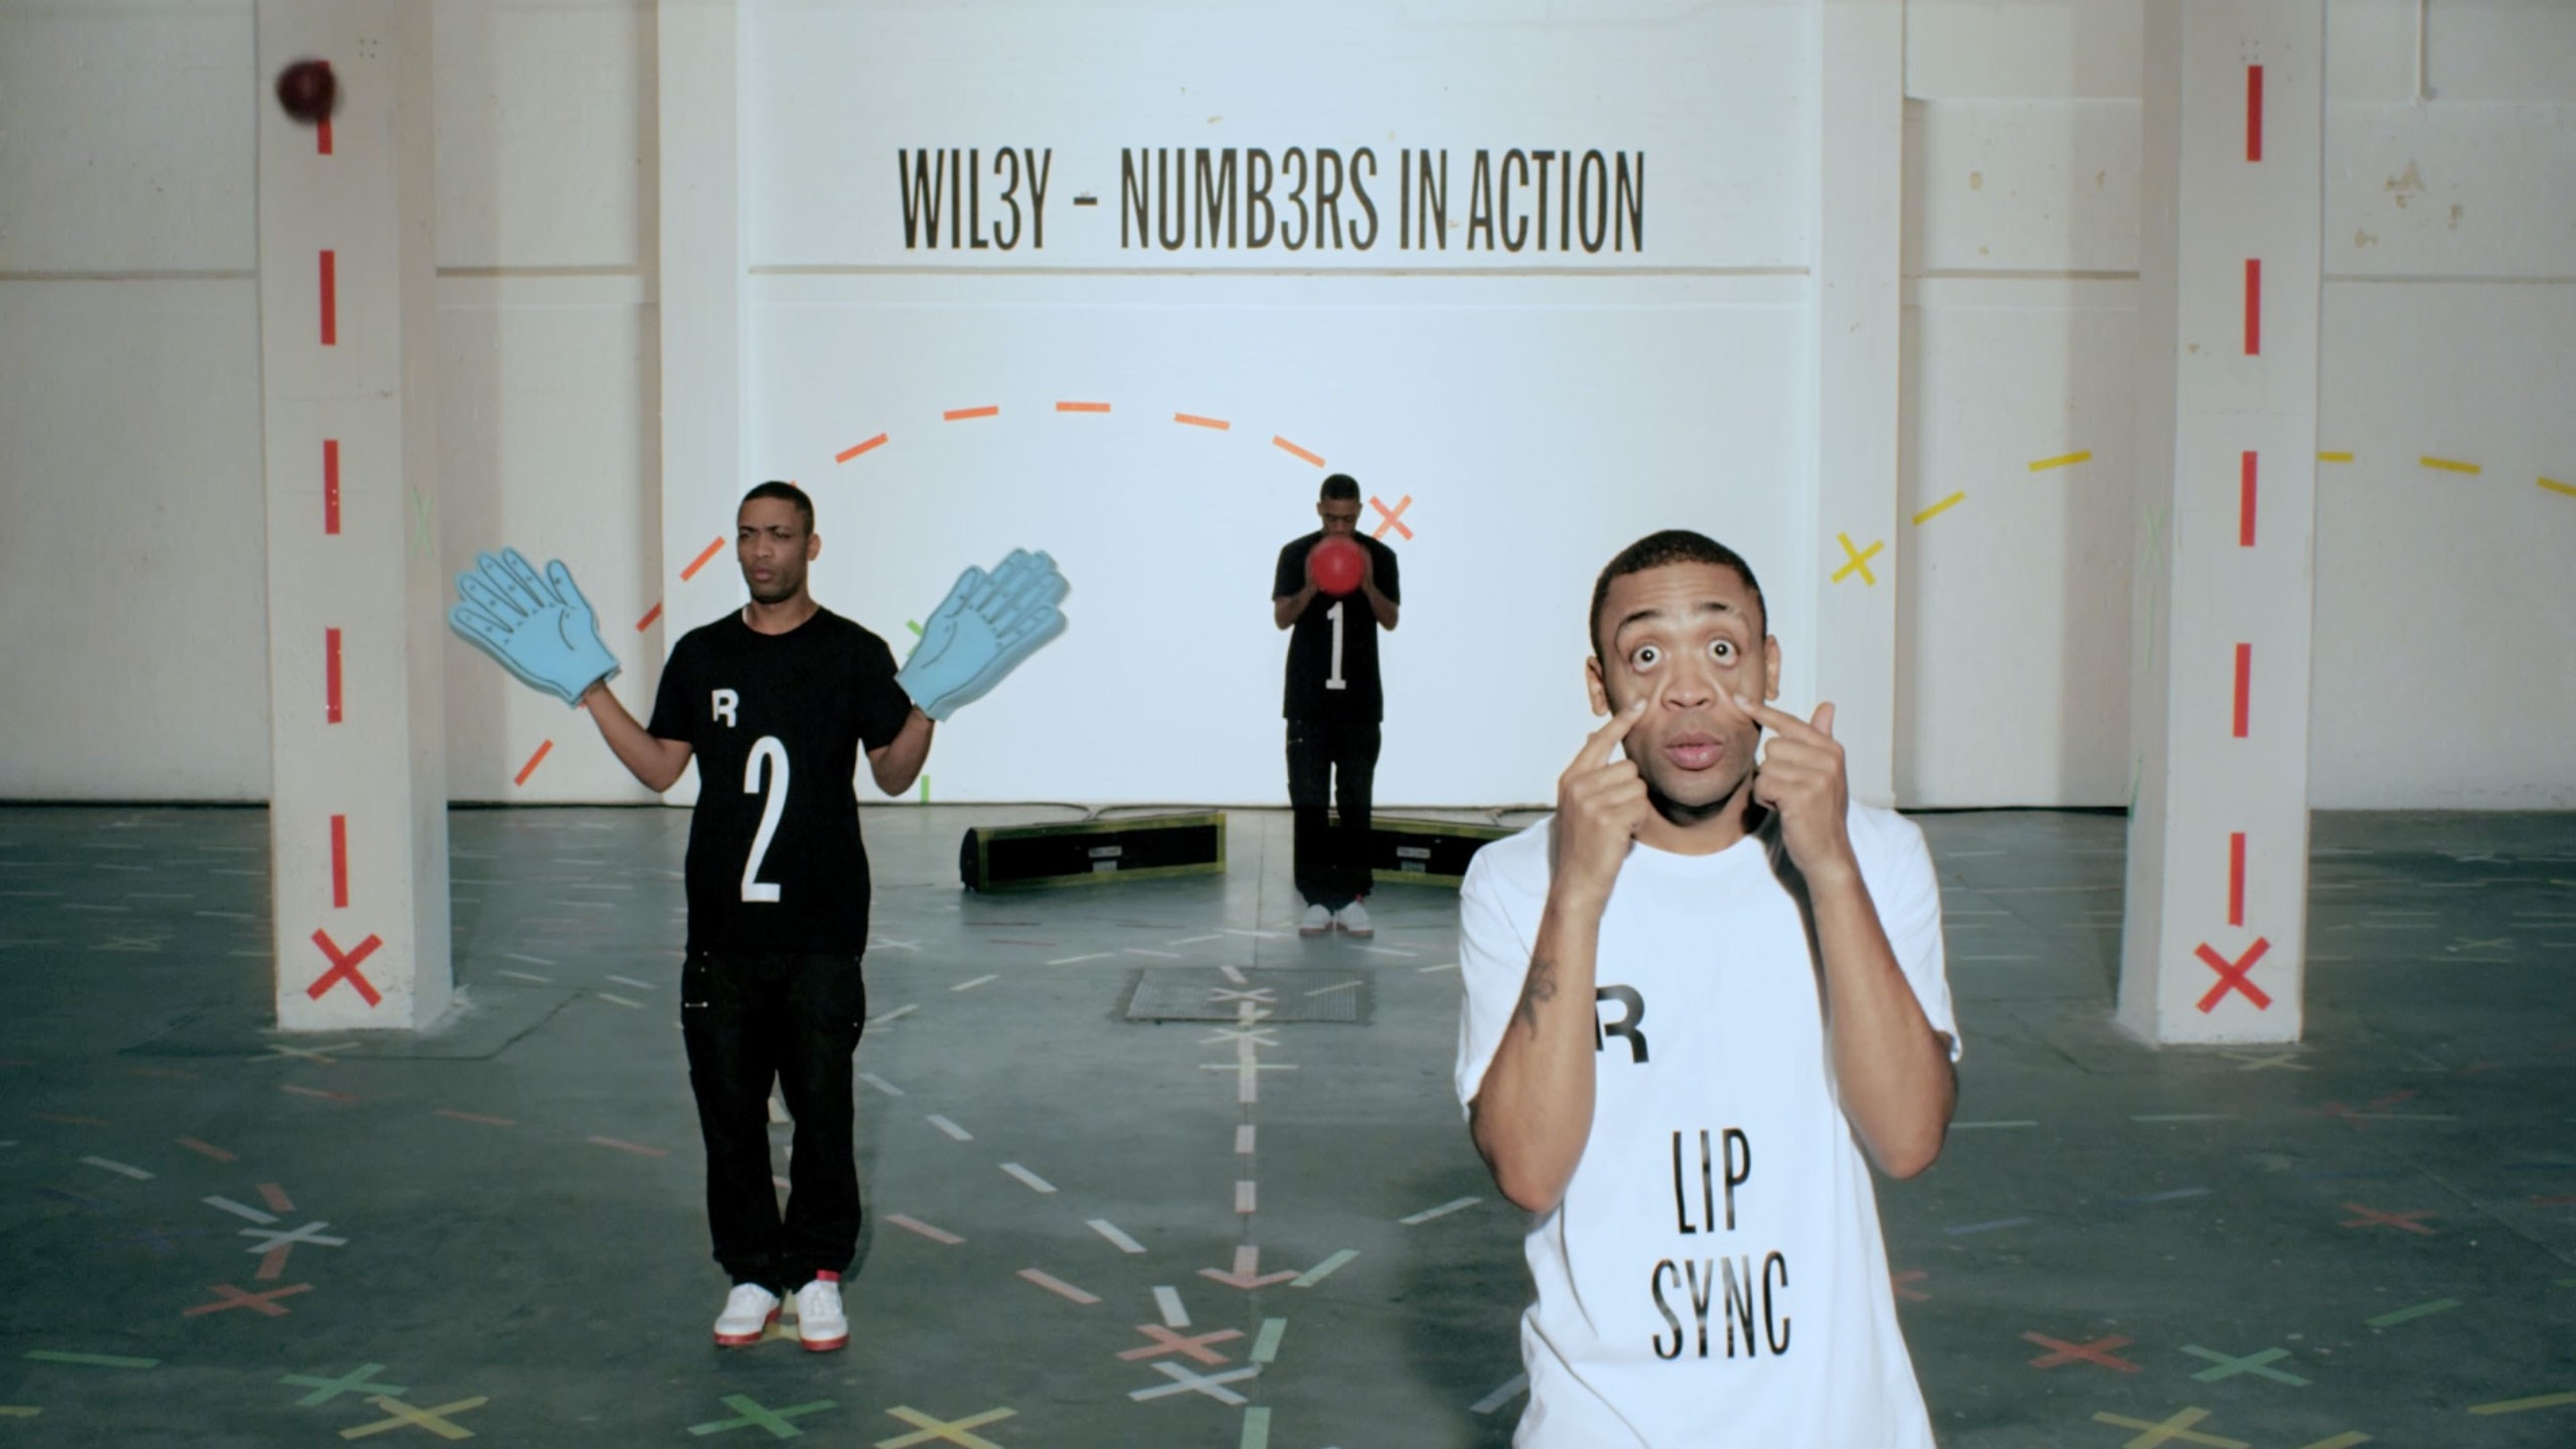 Wiley - Numbers in Action